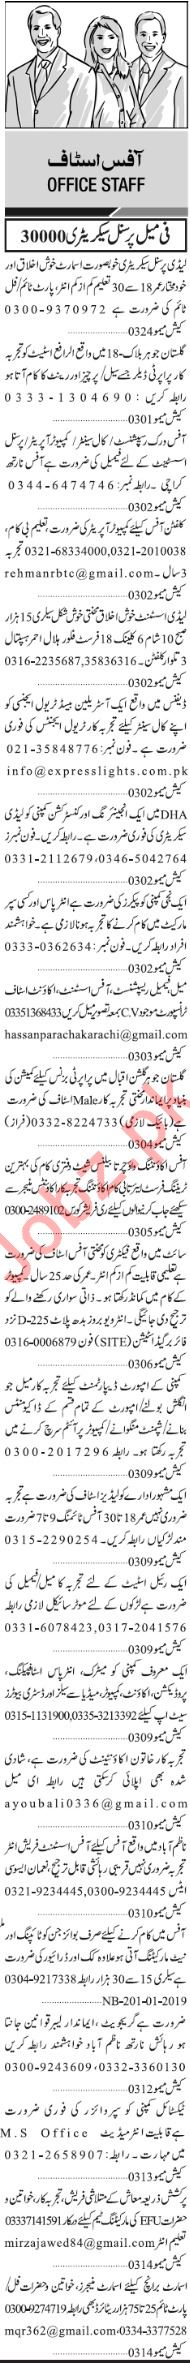 Jang Sunday Classified Ads 6th Jan 2019 for Office Staff